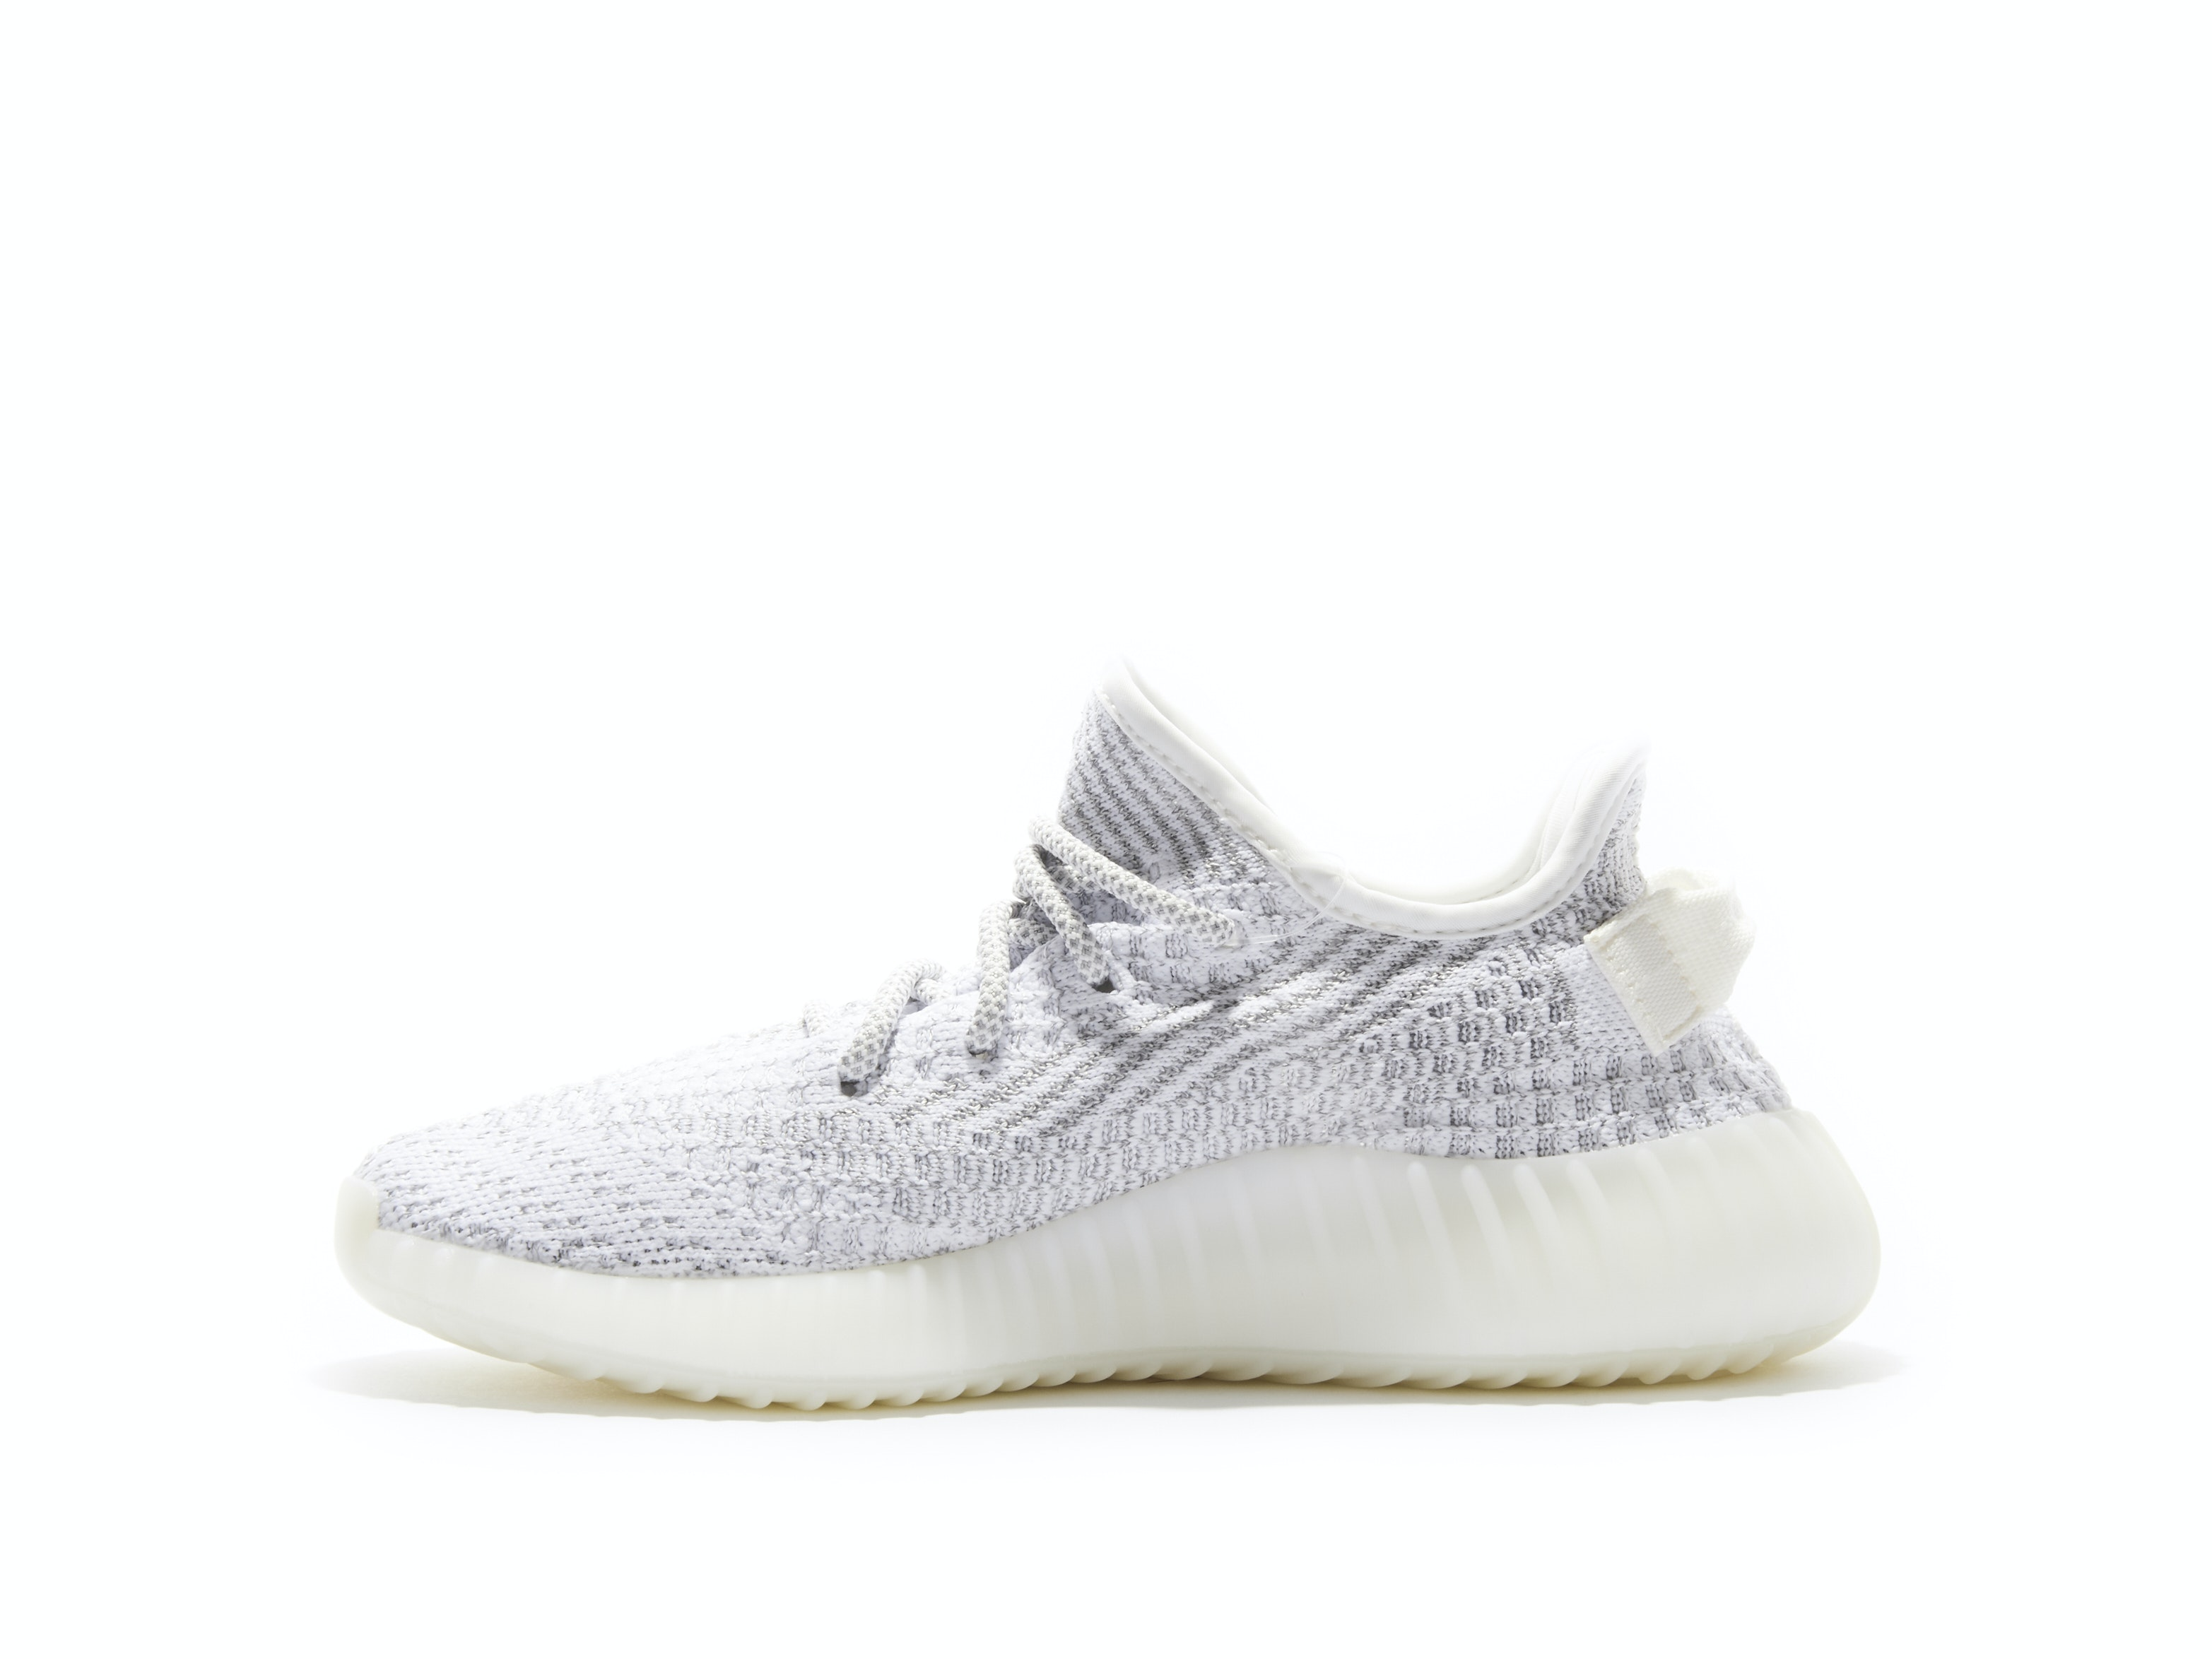 83cfa40598a Yeezy Boost 350 V2 Static Reflective. 100% AuthenticAvg Delivery Time  1-2  days